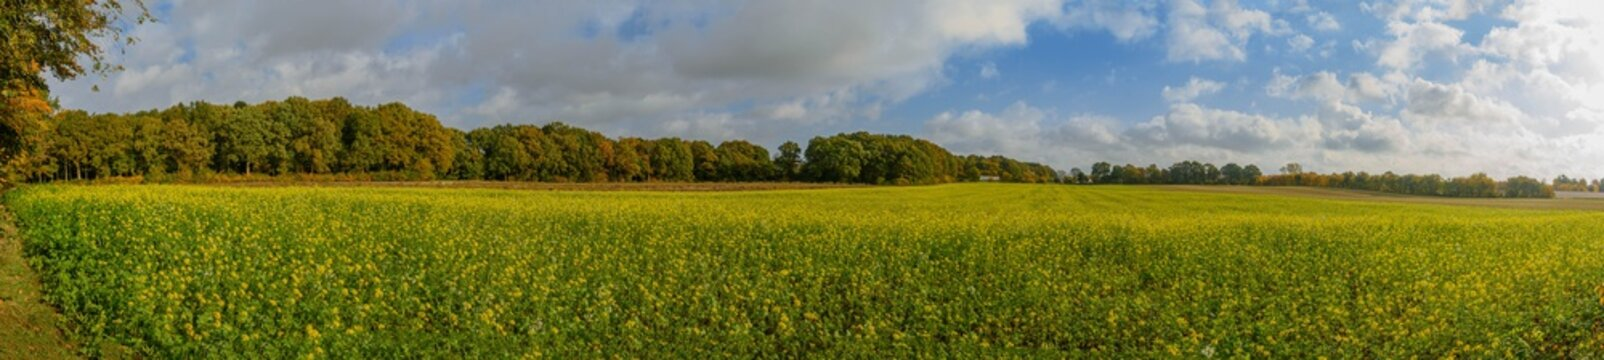 Panorama view of rural landscape with field mustard. Rural meadow covered with yellow flowers (Sinapis arvensis). Bee pasture of wild mustard which attracts insects and bee.